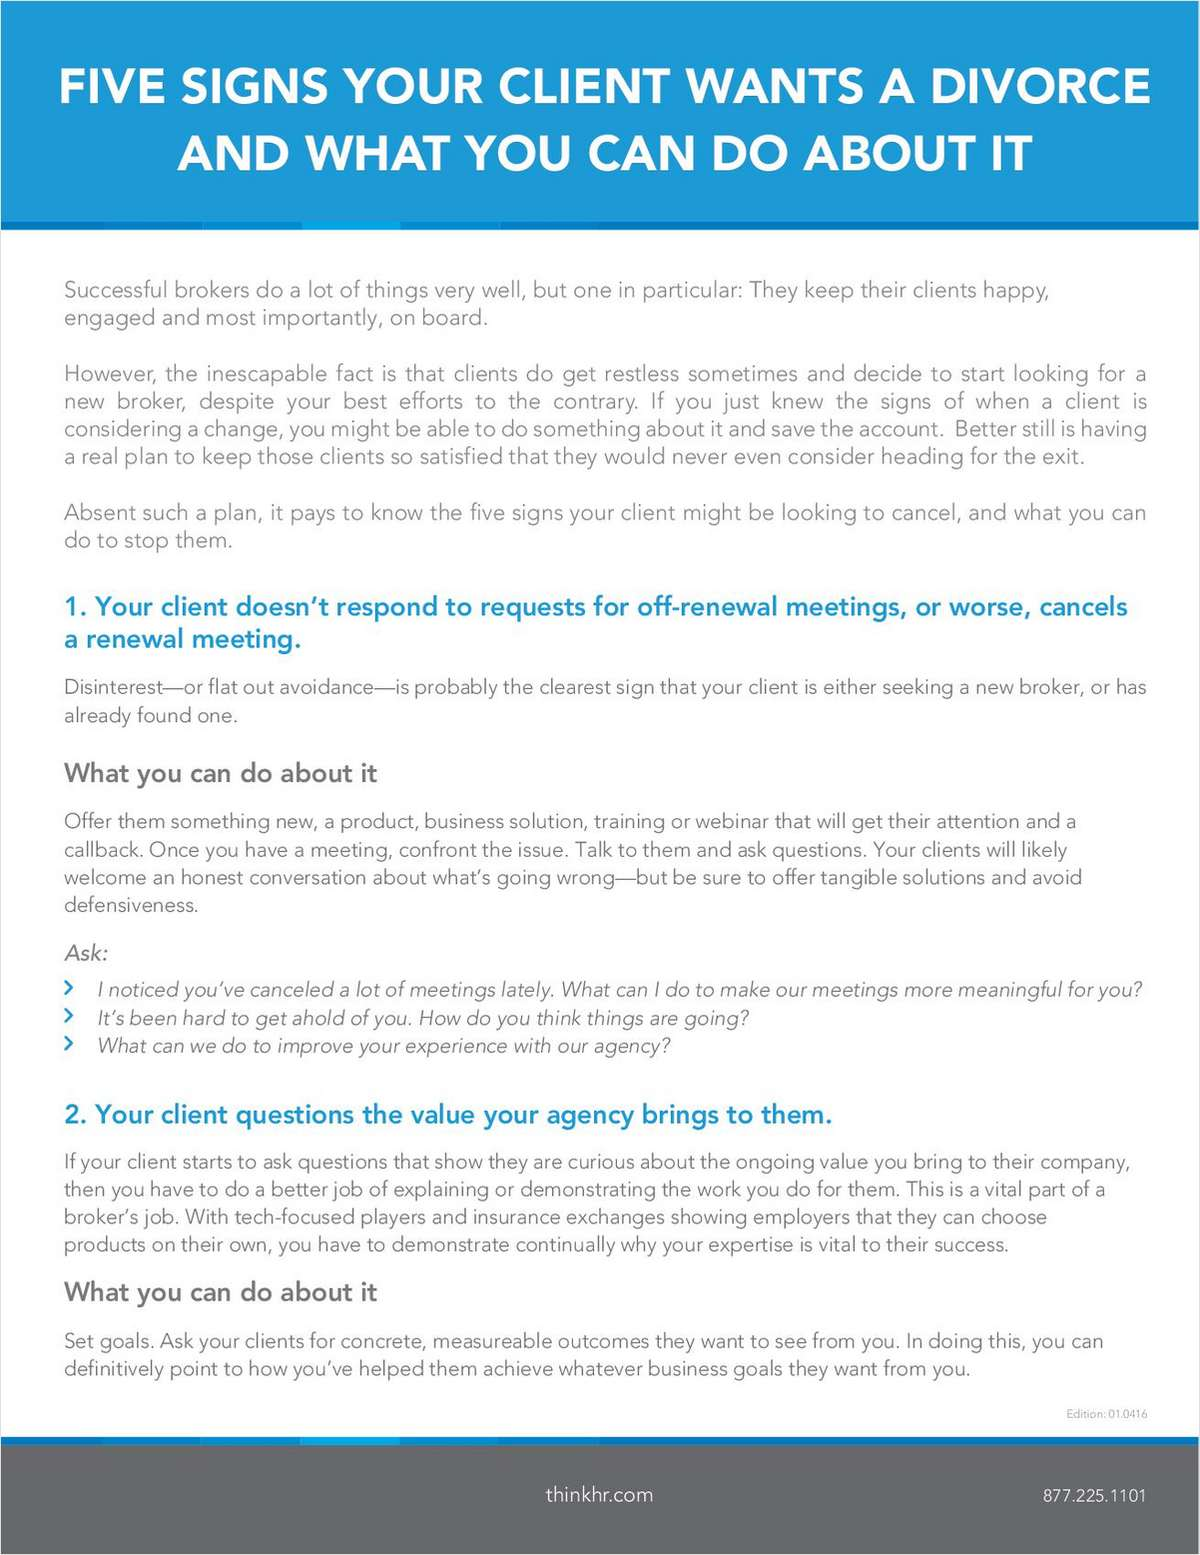 Instant Access White Paper: 5 Signs Your Client Wants a Divorce and What You Can Do About It